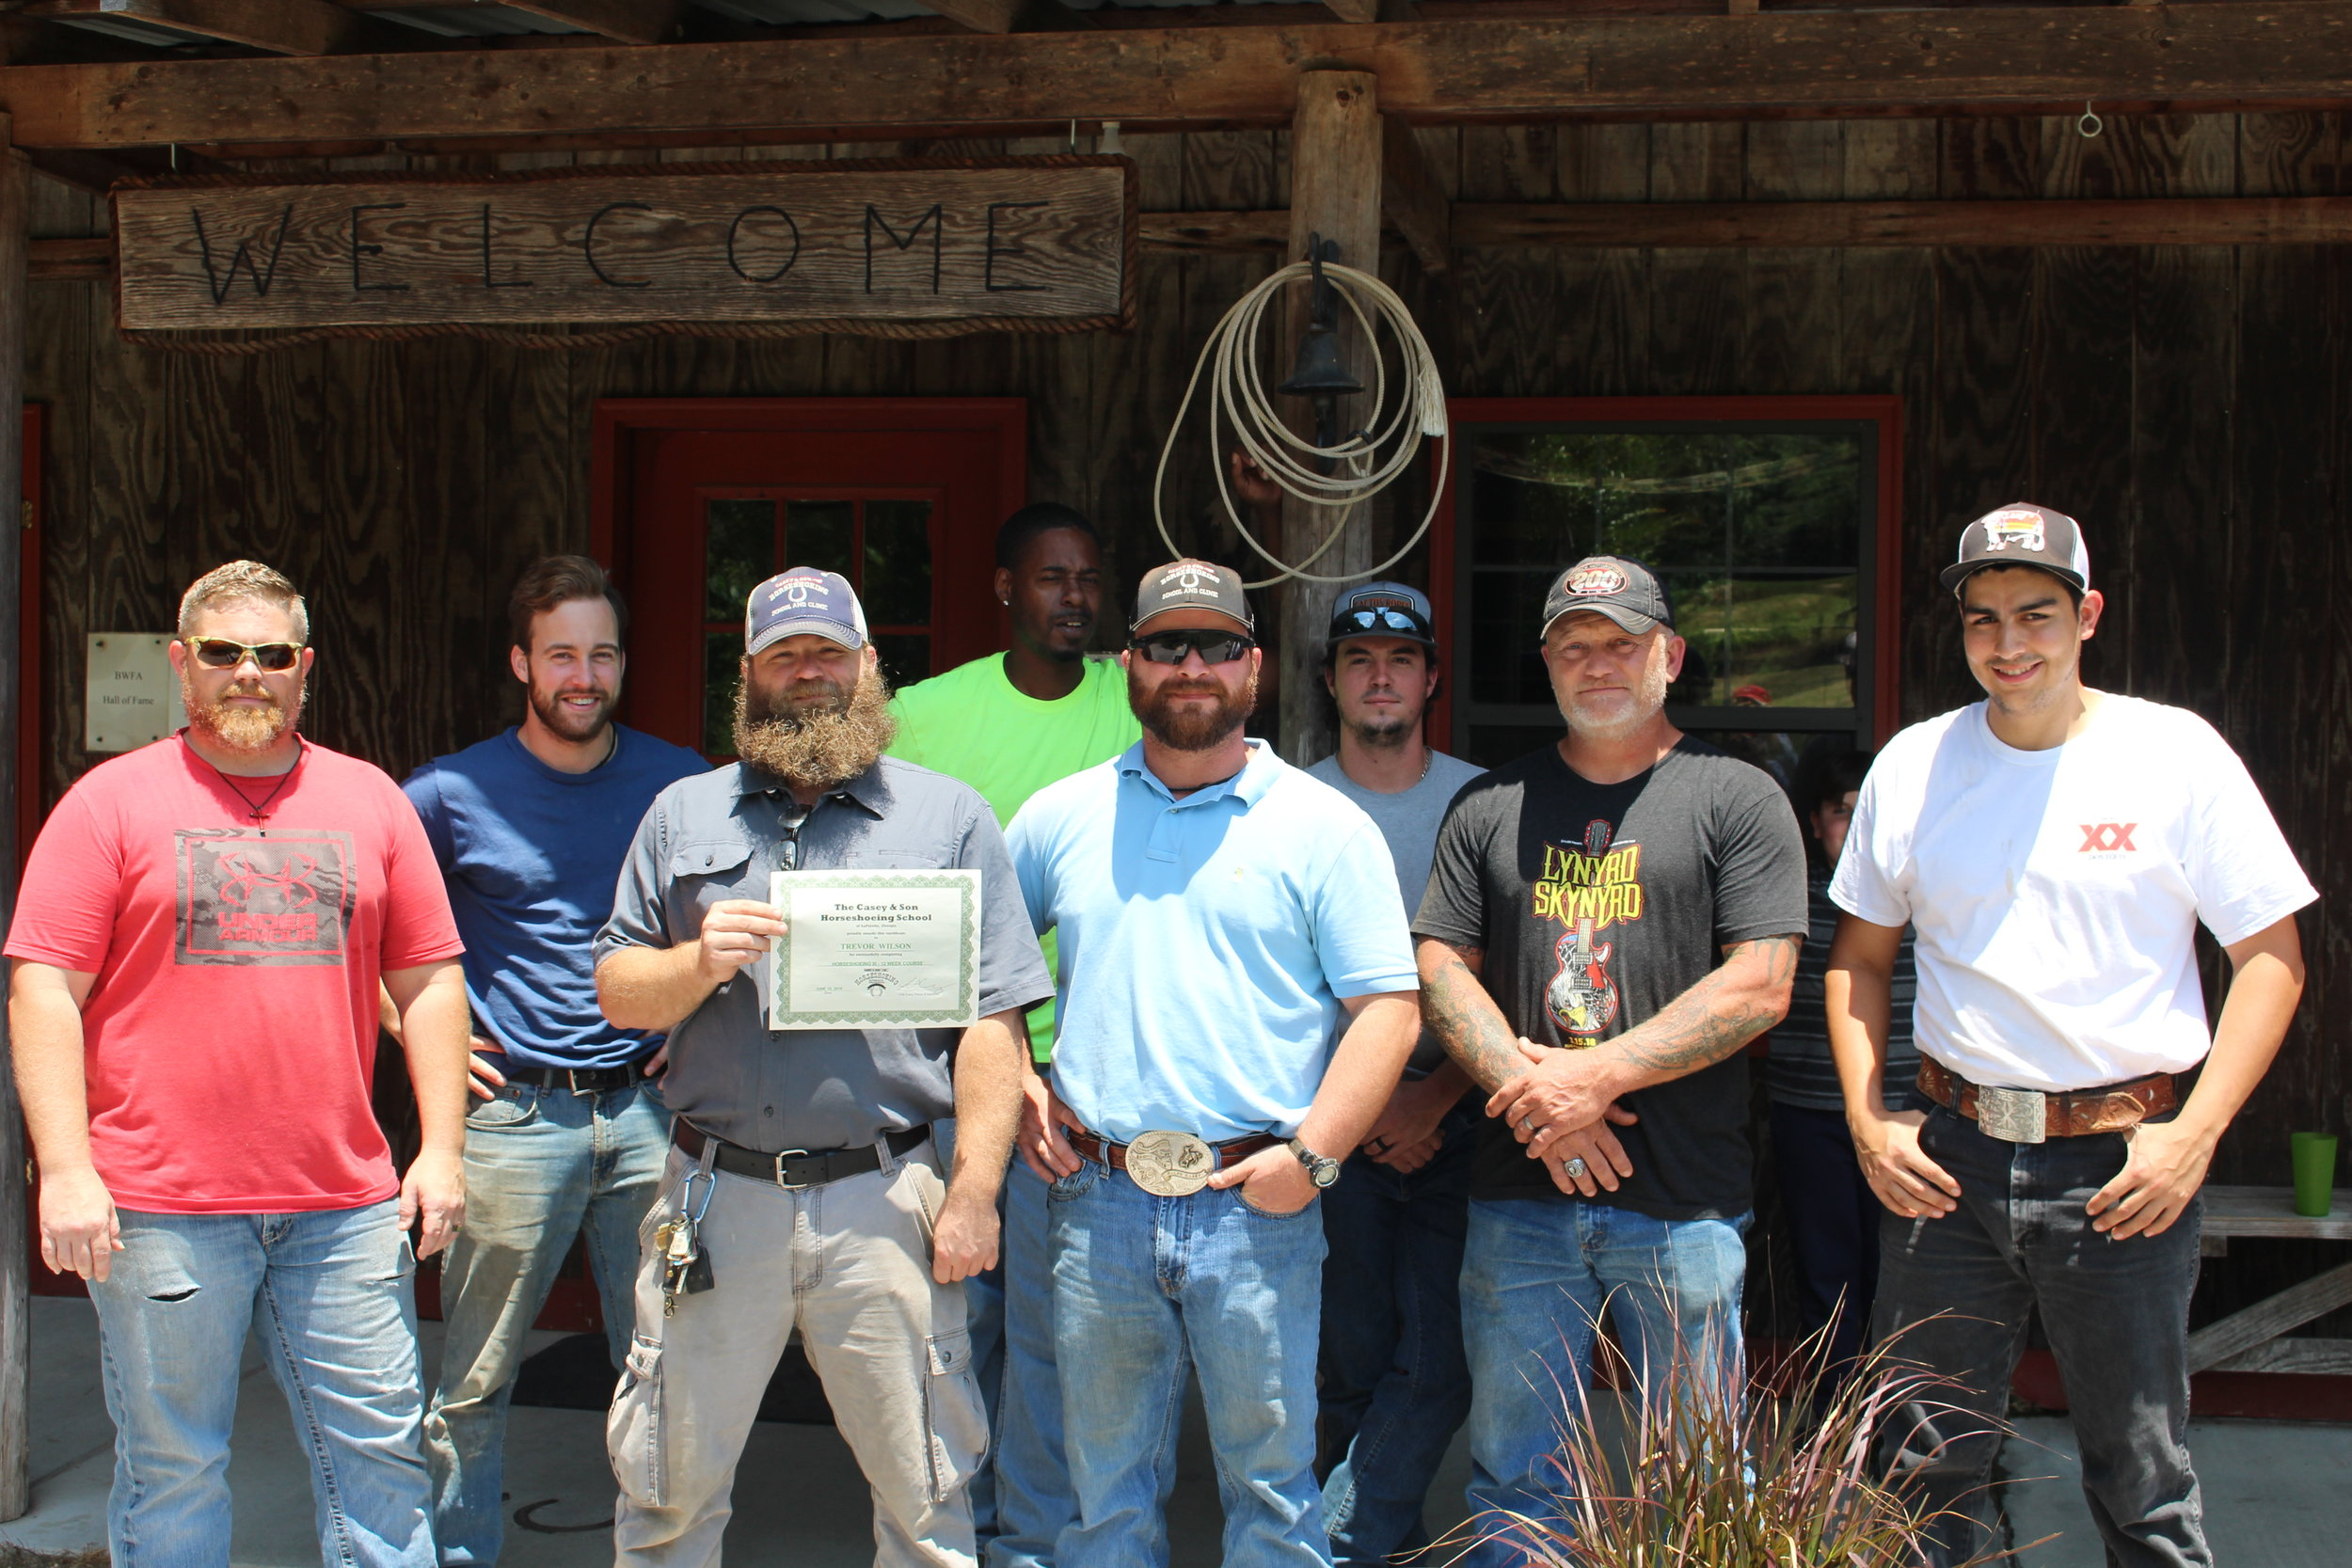 Trevor Wilson, Marietta, Georgia graduates from Casey Horseshoeing School in Georgia from 16 week Professional Farrier Course. Here with fellow students. 6.15.19